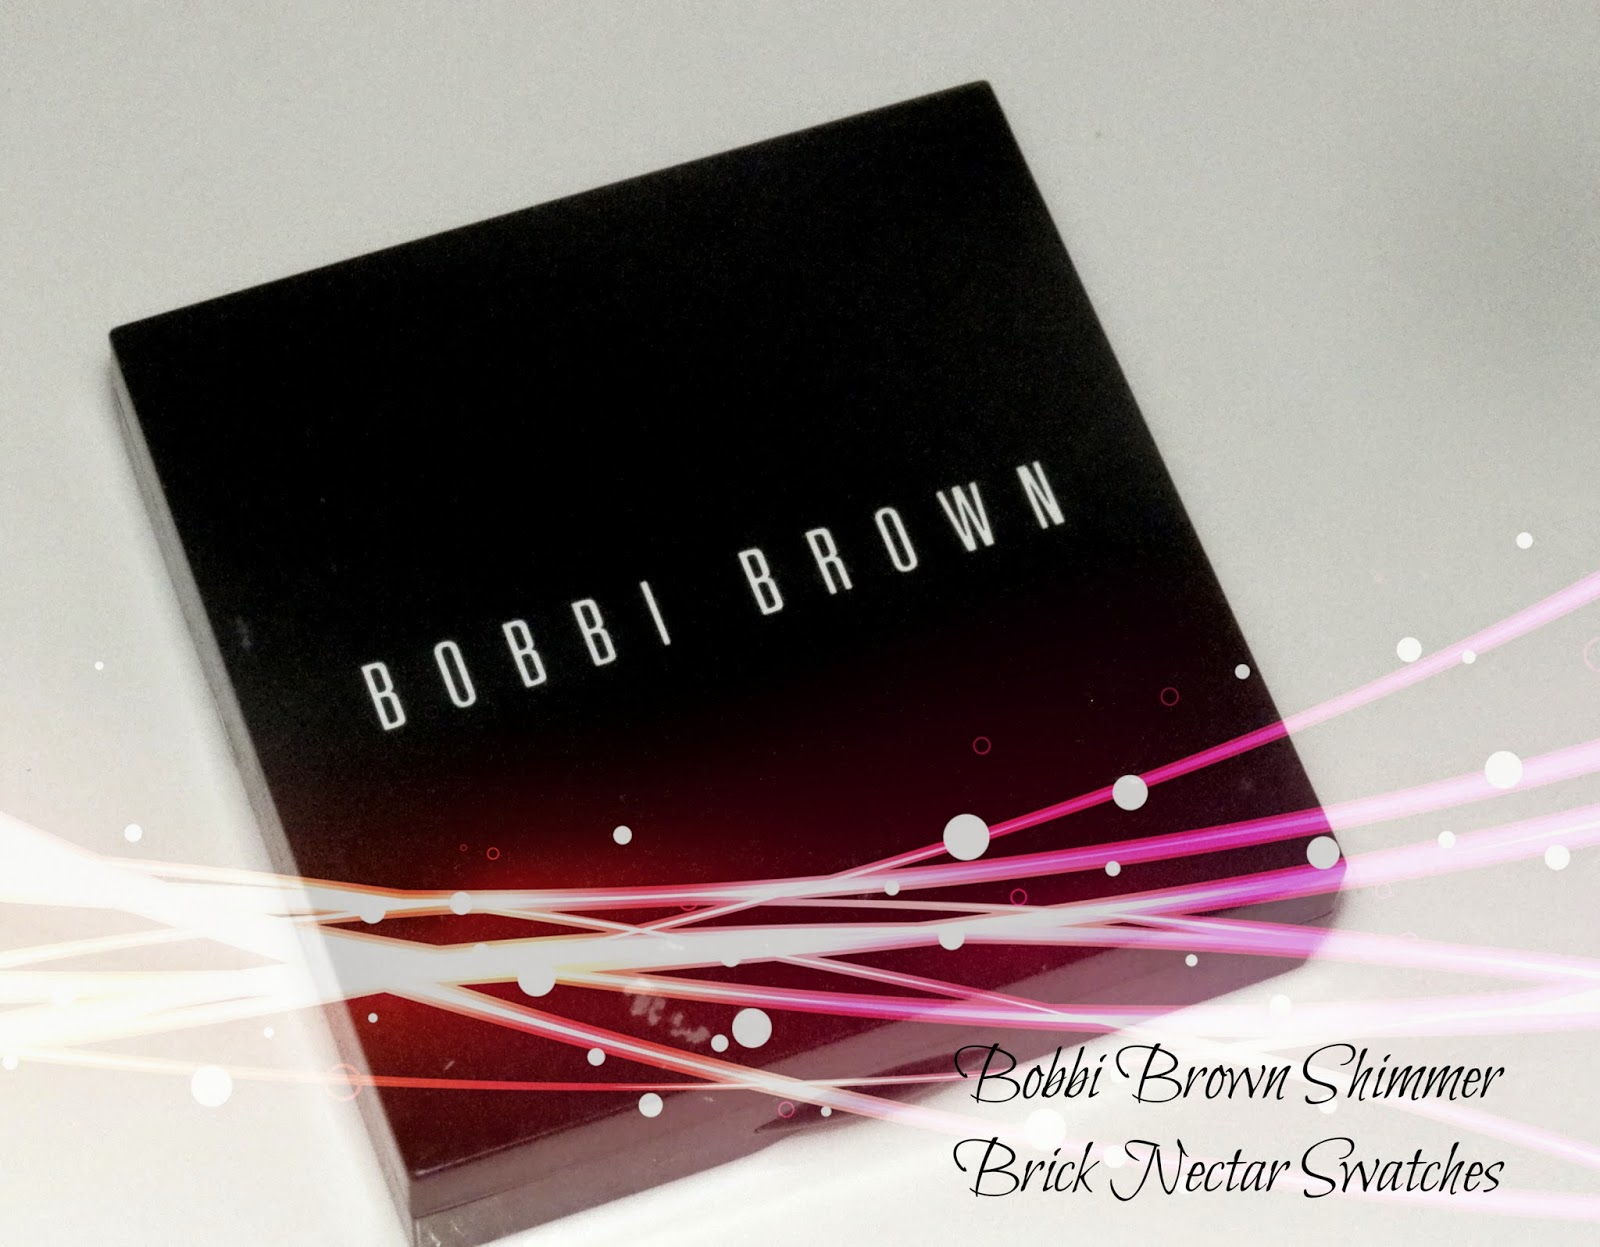 Bobbi Brown Shimmer Brick Nectar Swatches